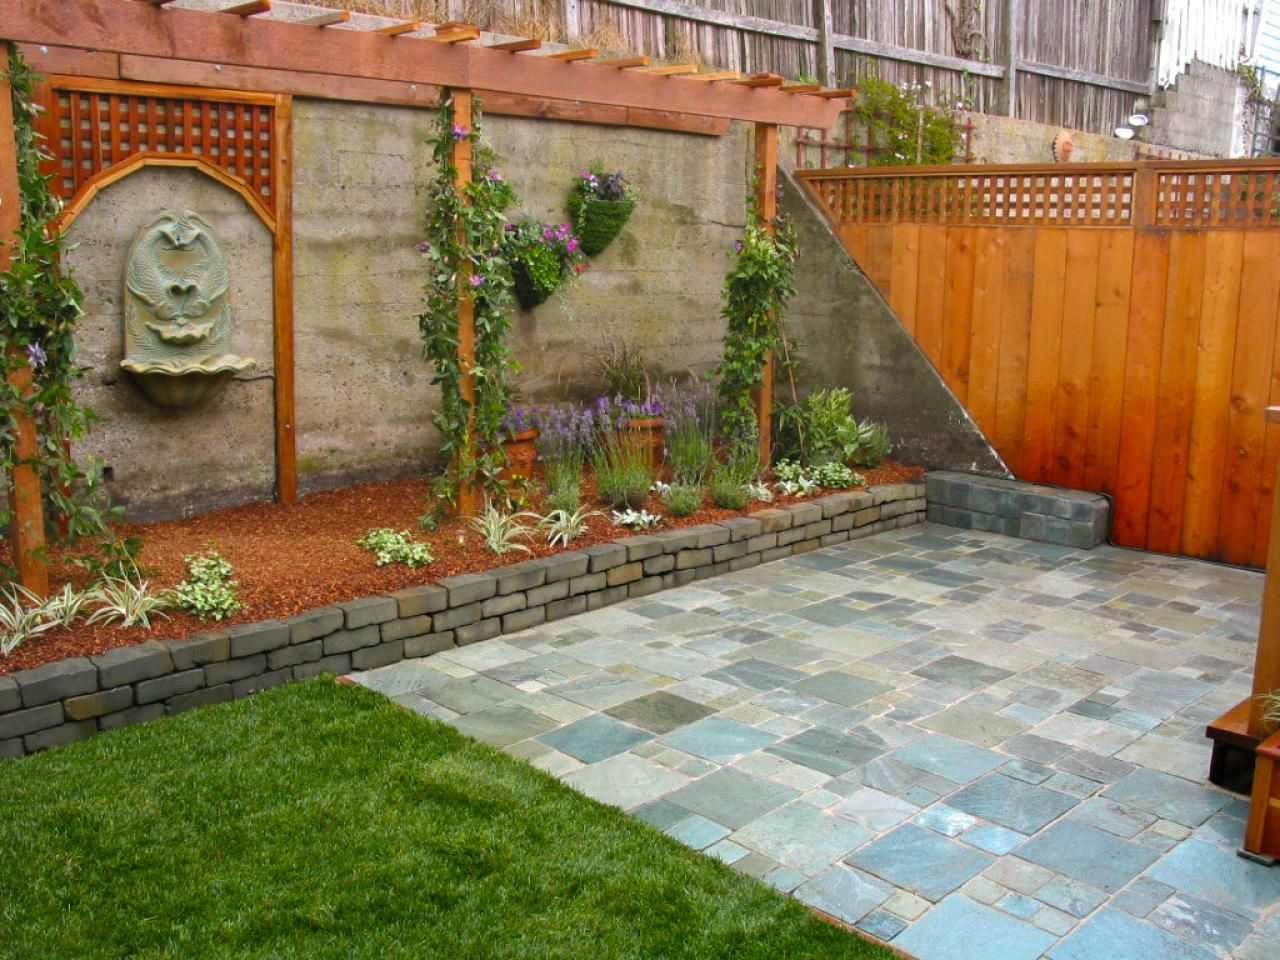 Amazing Outdoor Walls and Fences | Pinterest | Fences, Hgtv and ...